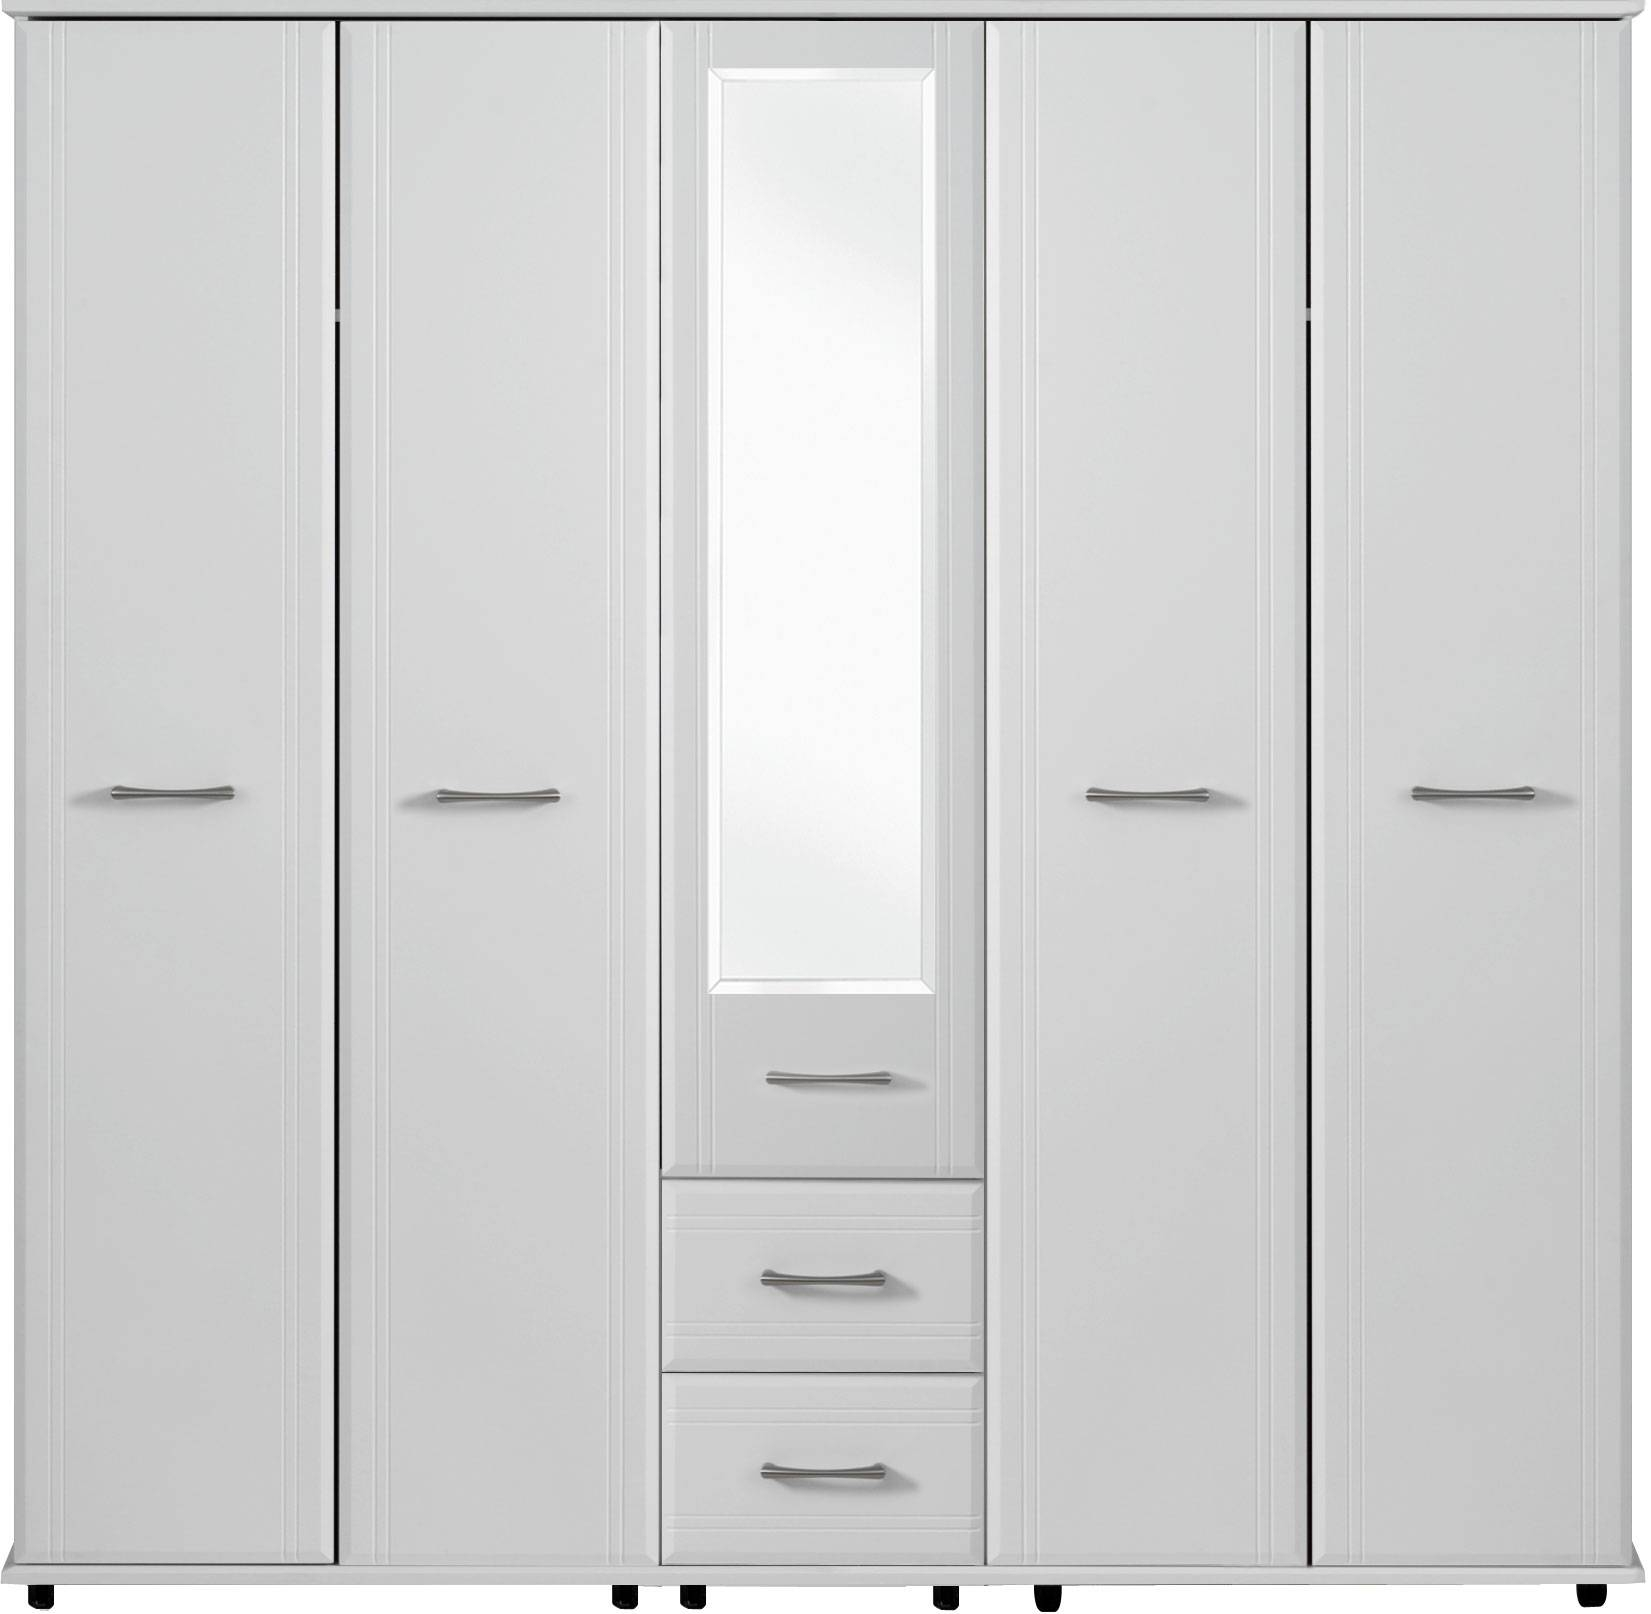 Dorchester 5 Door Wardrobe 1 Mirror 2 Drawers | Crendon Beds Regarding Wardrobes With Mirror And Drawers (View 4 of 15)